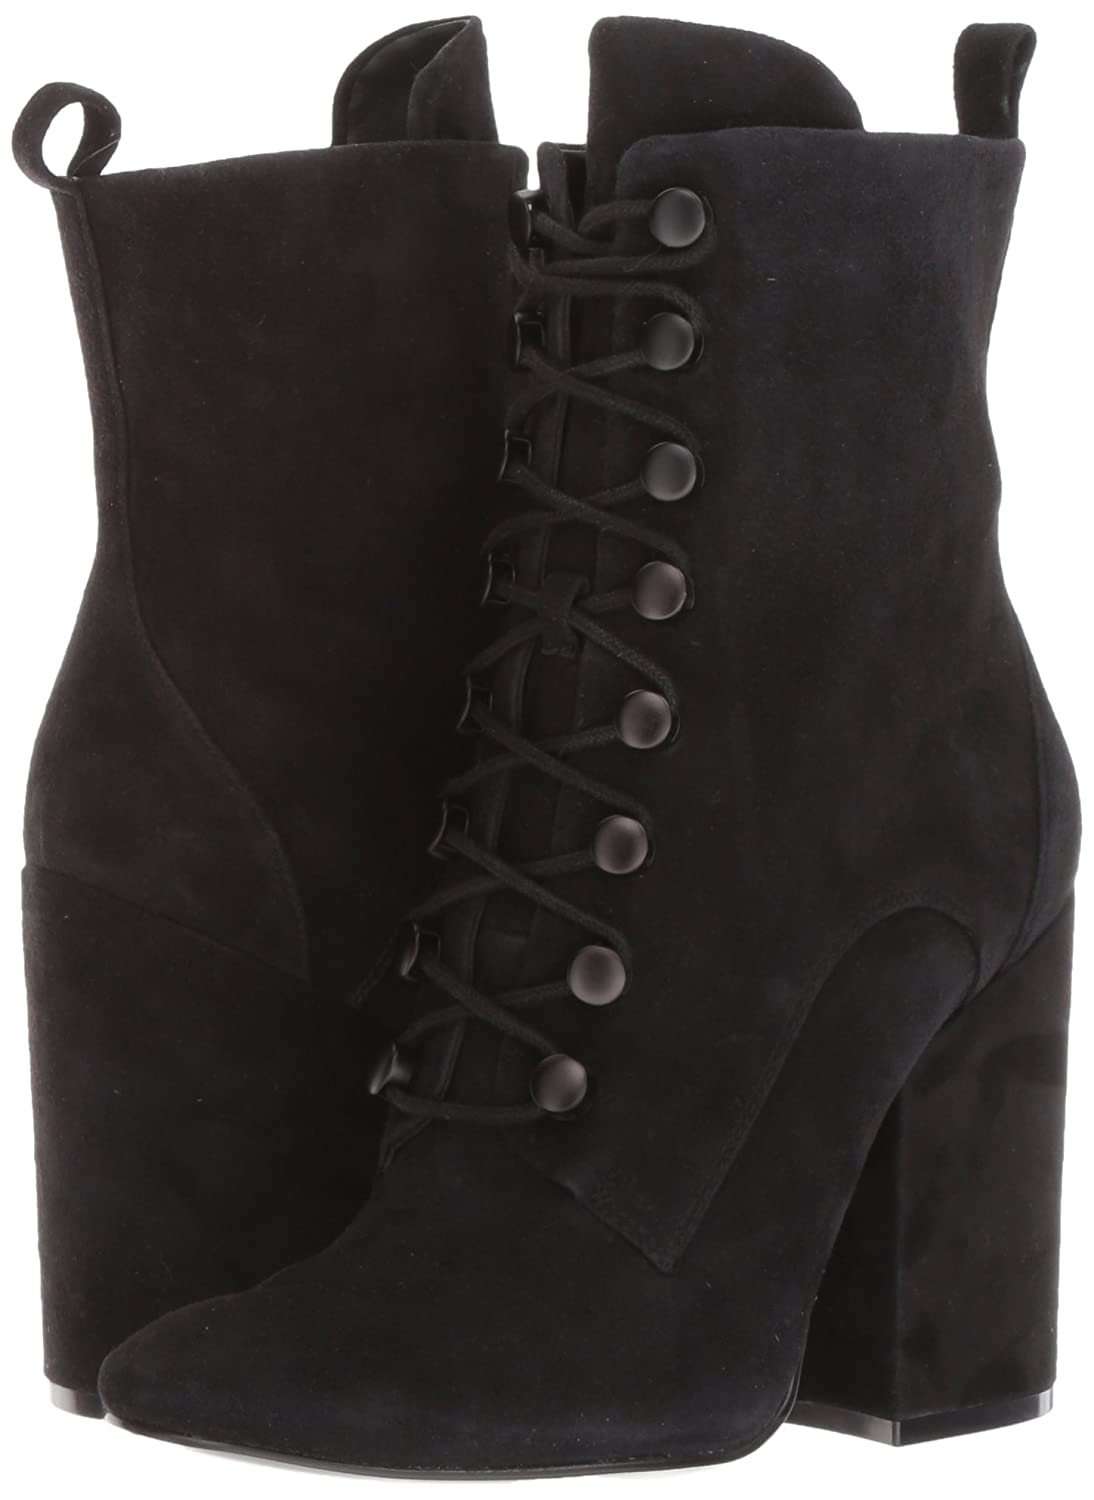 KENDALL + KYLIE 7 Women's Bridget Fashion Boot B0713T5LVX 7 KYLIE B(M) US|Black c87ee7